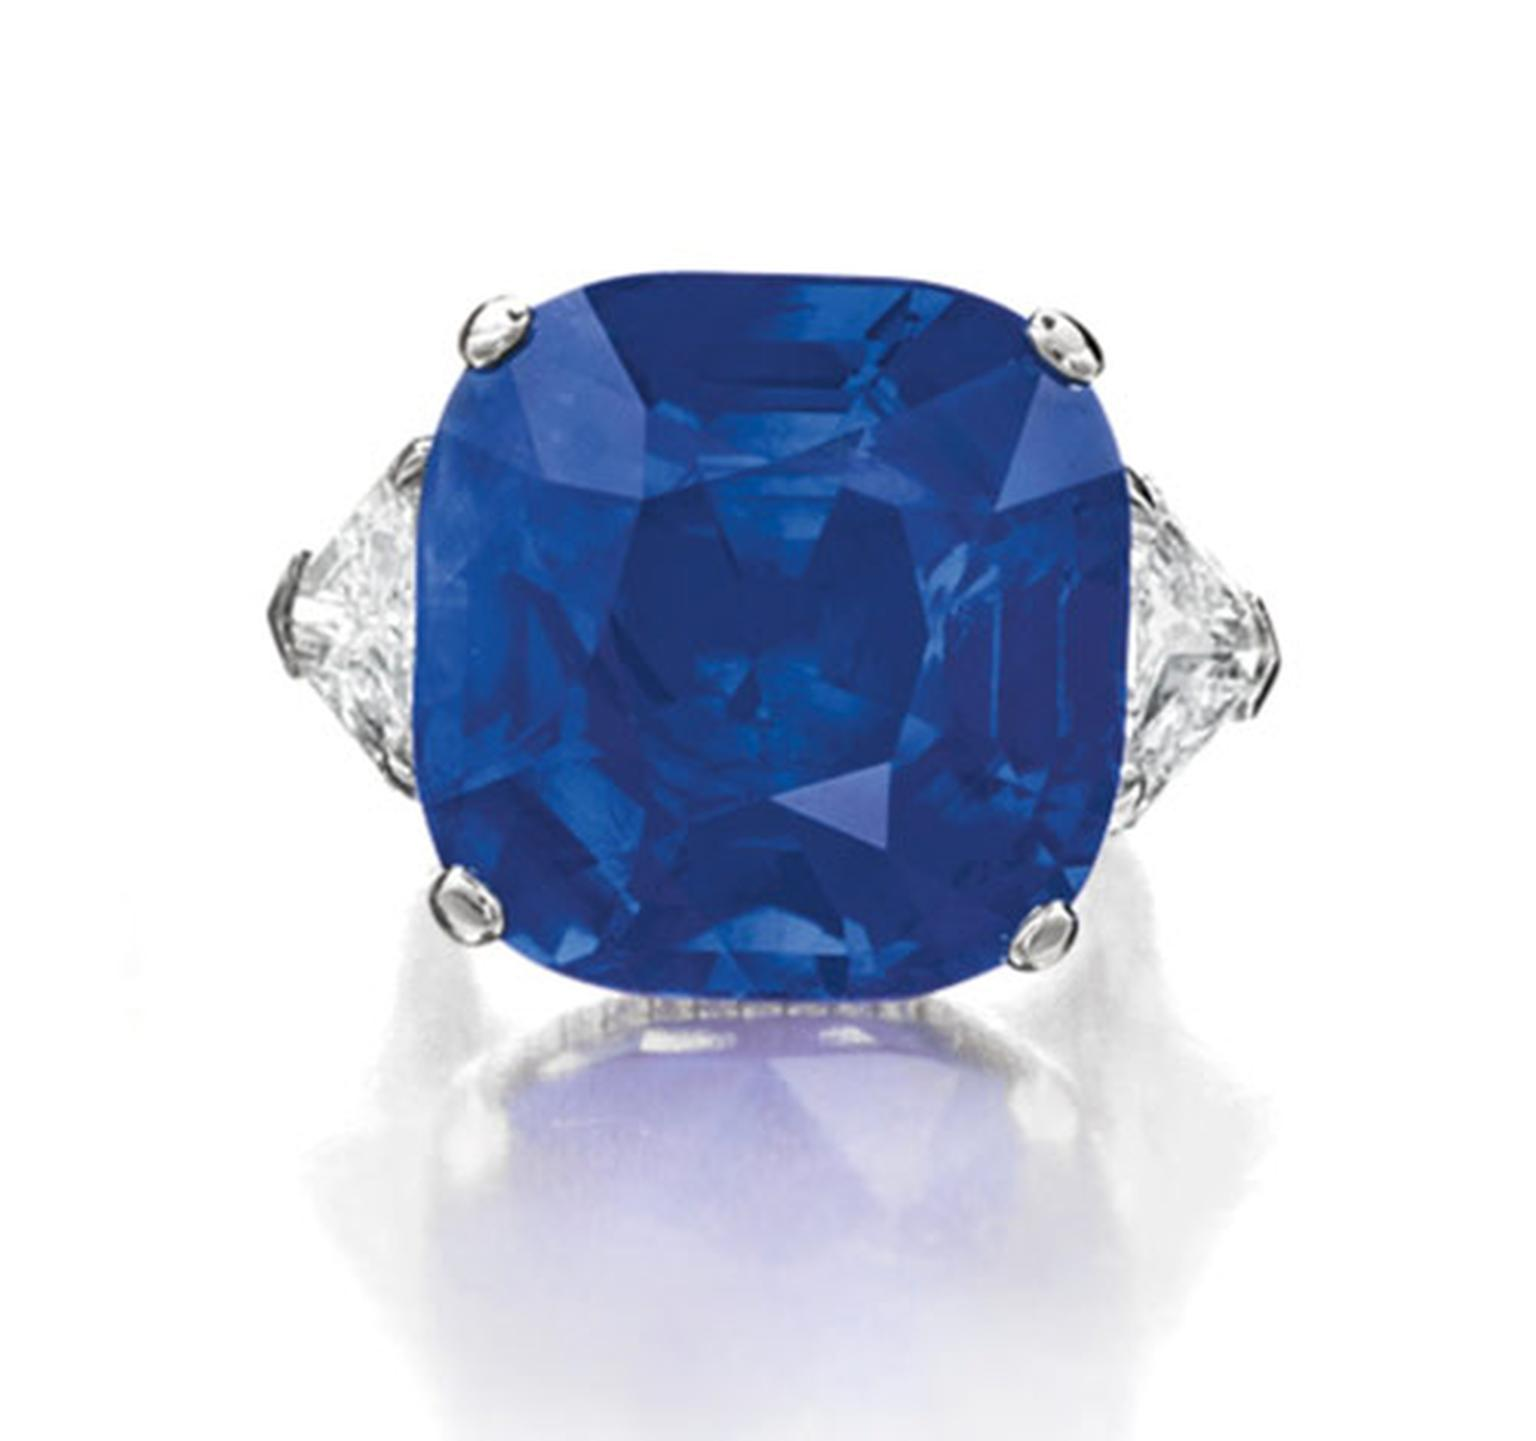 Christies-Cushion-Cut-Burmese-Sapphire-Diamond-Ring.jpg